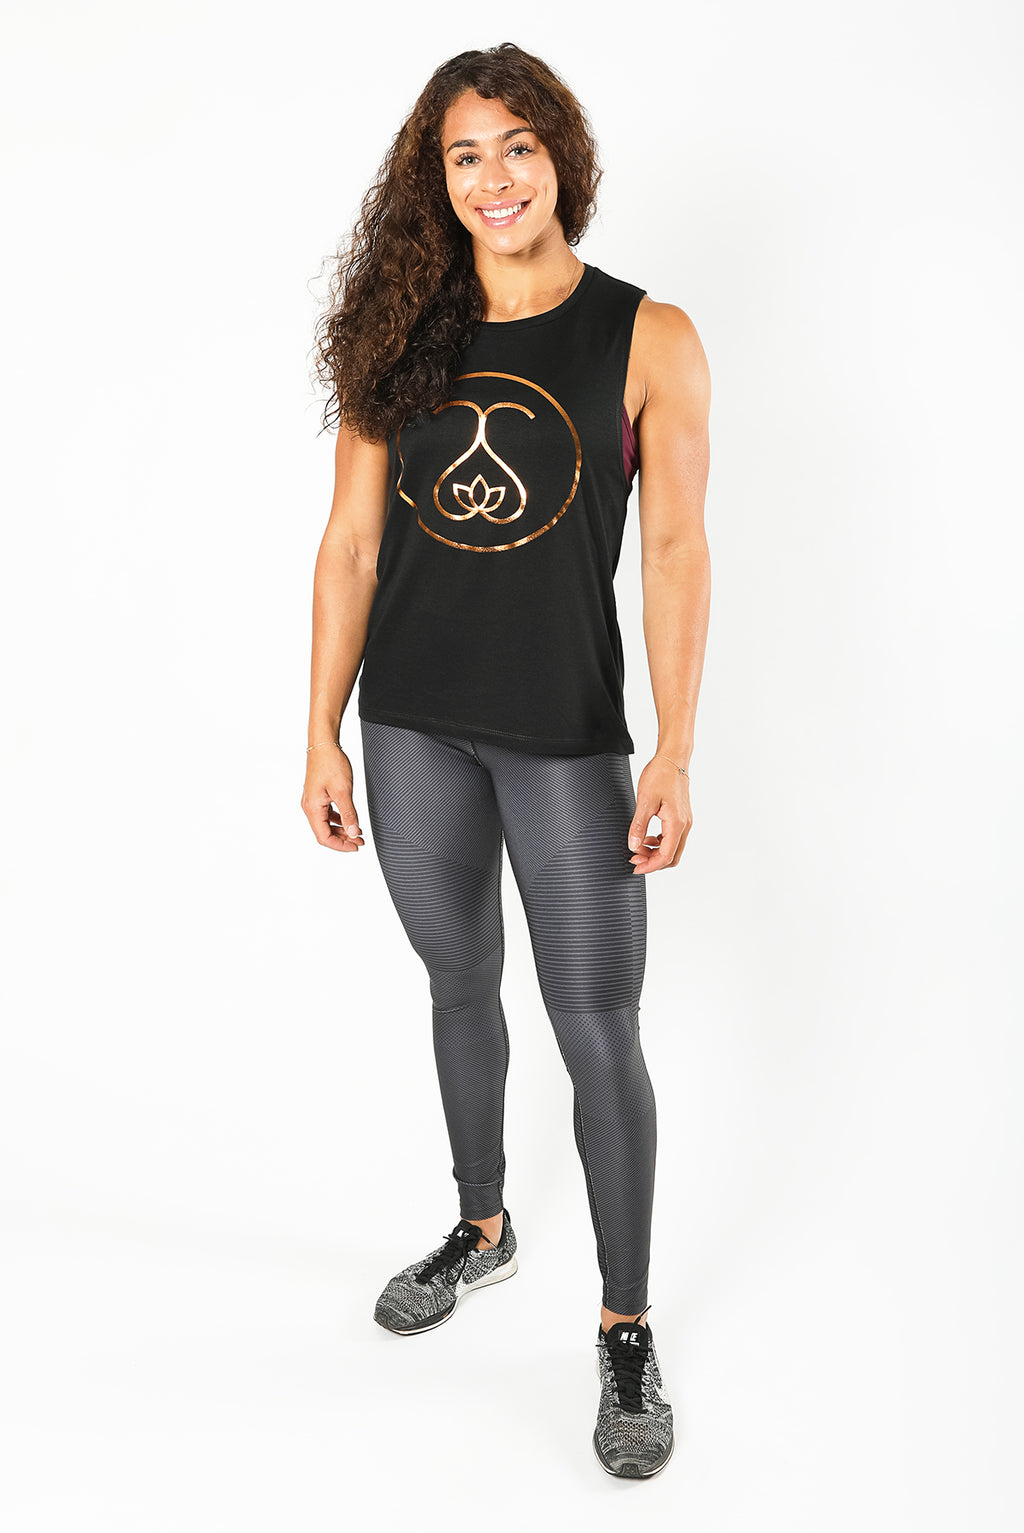 Sweat Society sally muscle tank ethical activewear canada usa